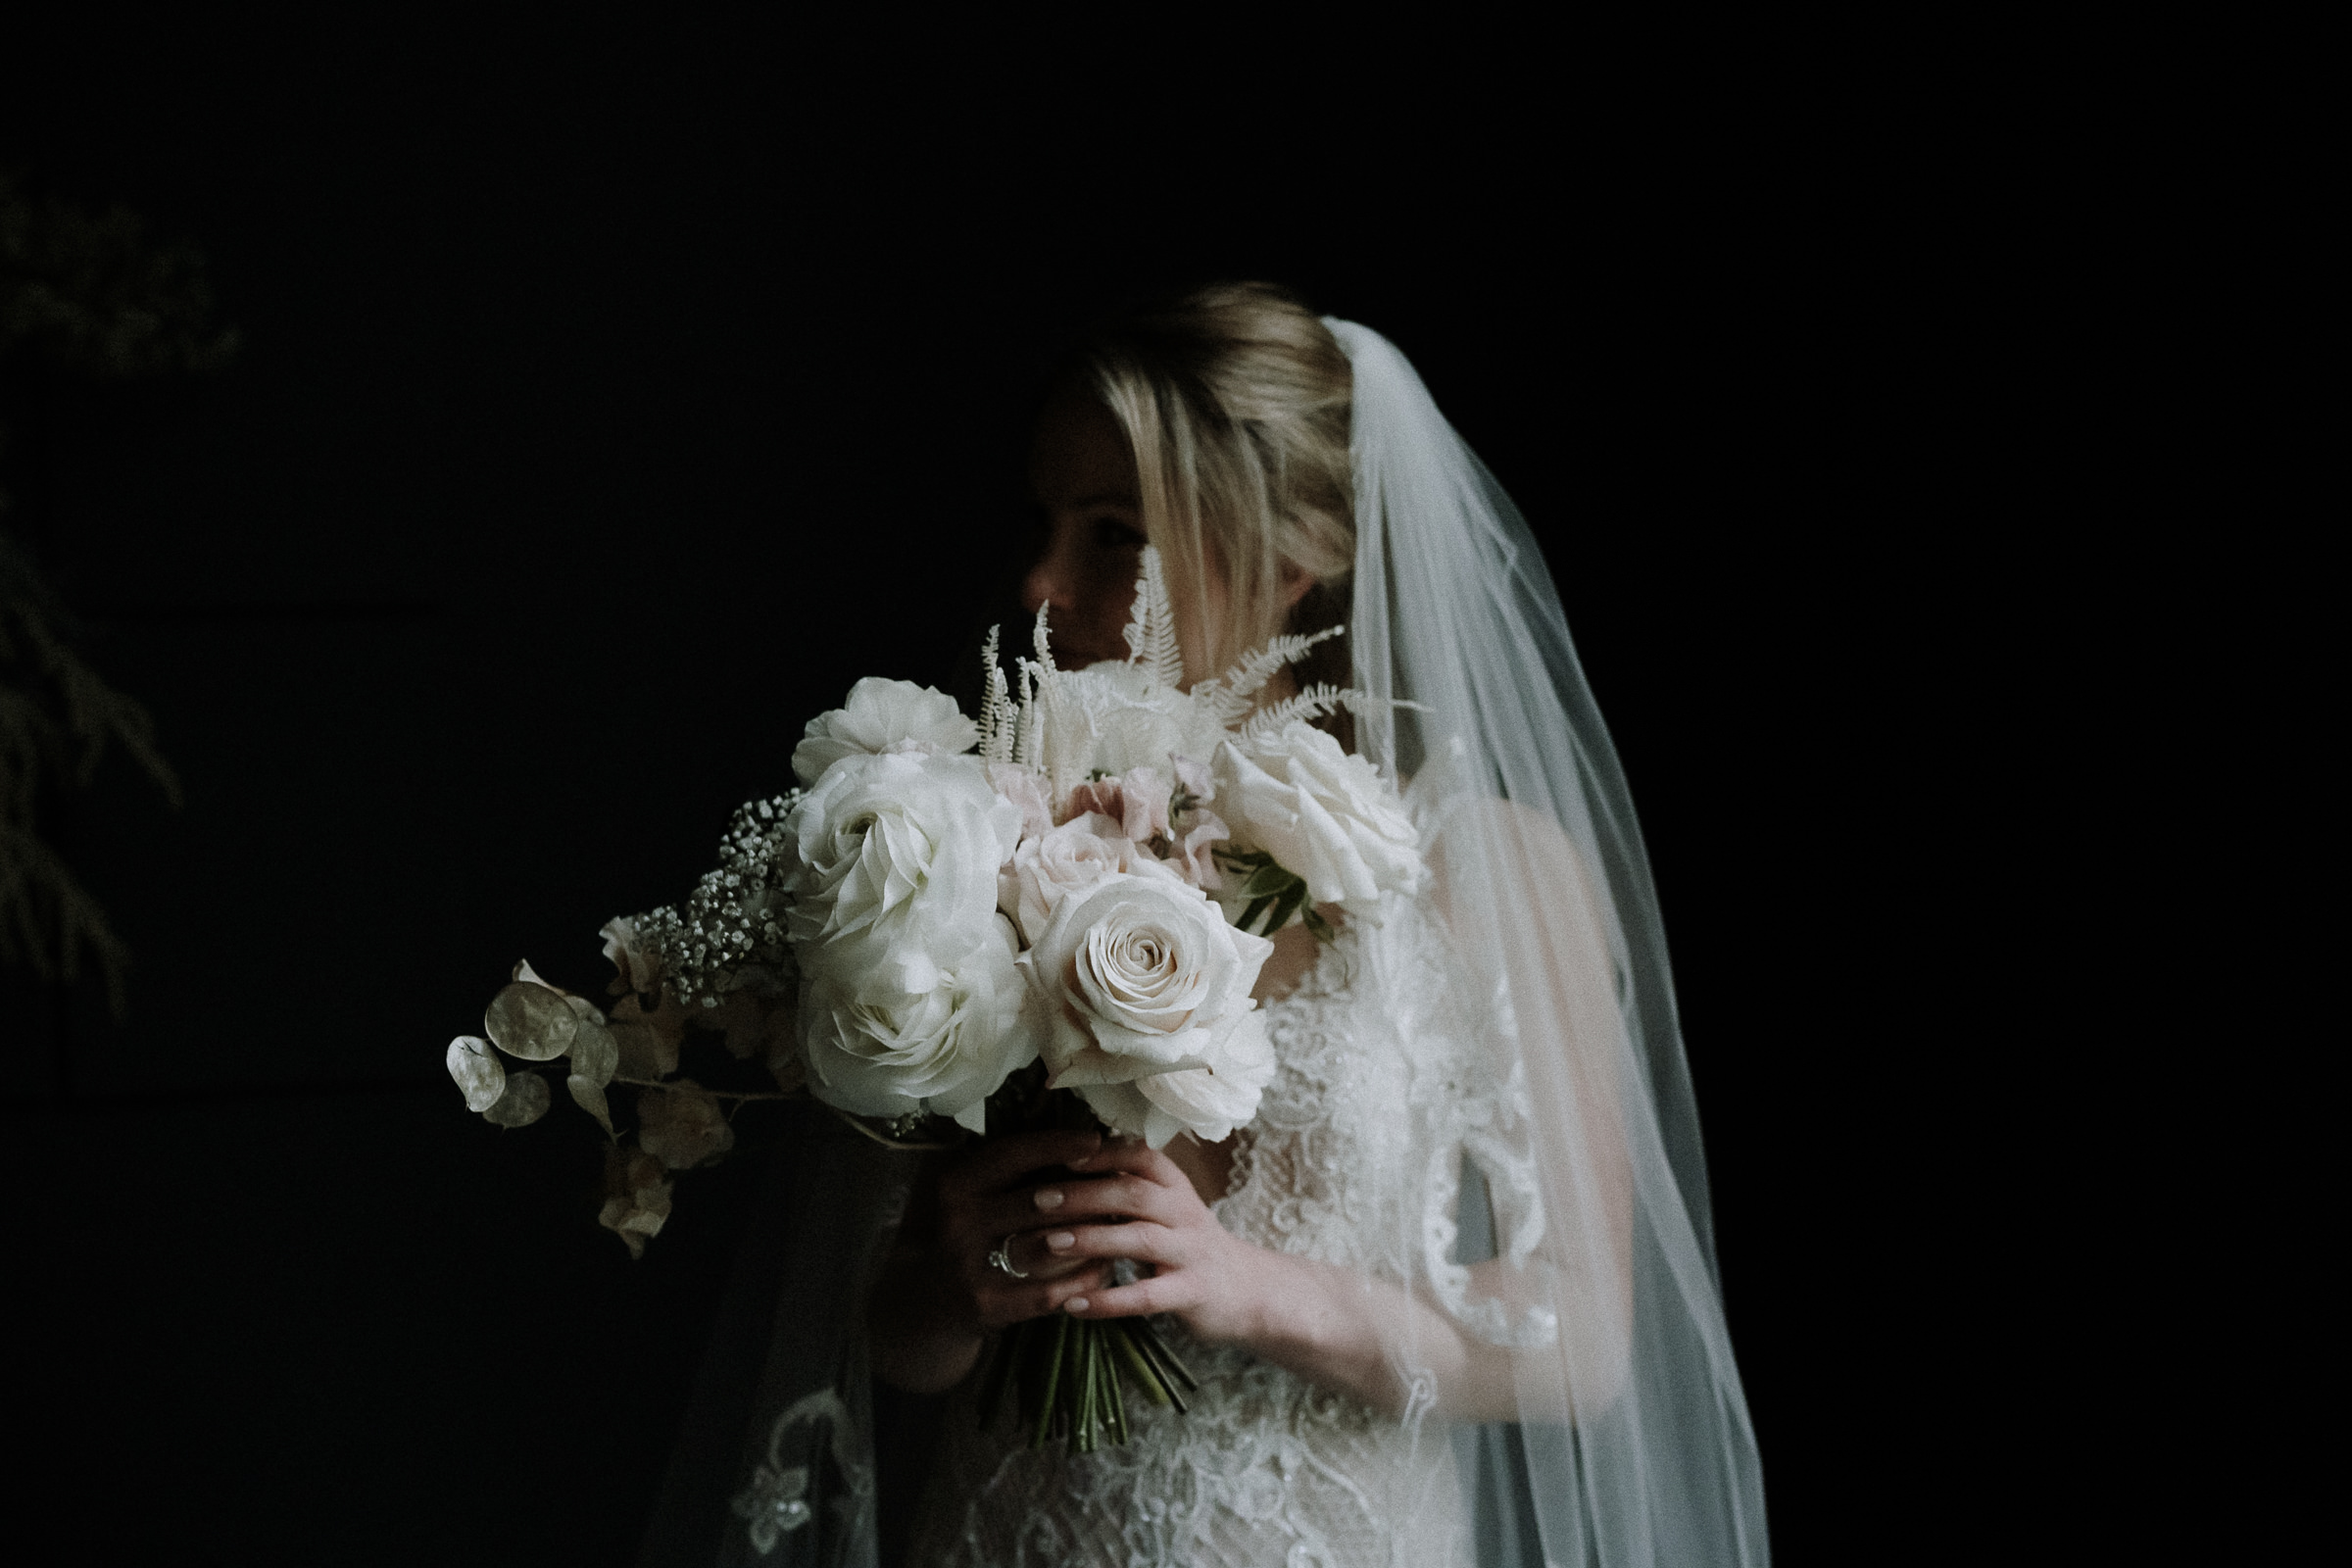 Bride with bouquet of giant white roses - photo by Naomi van der Kraan